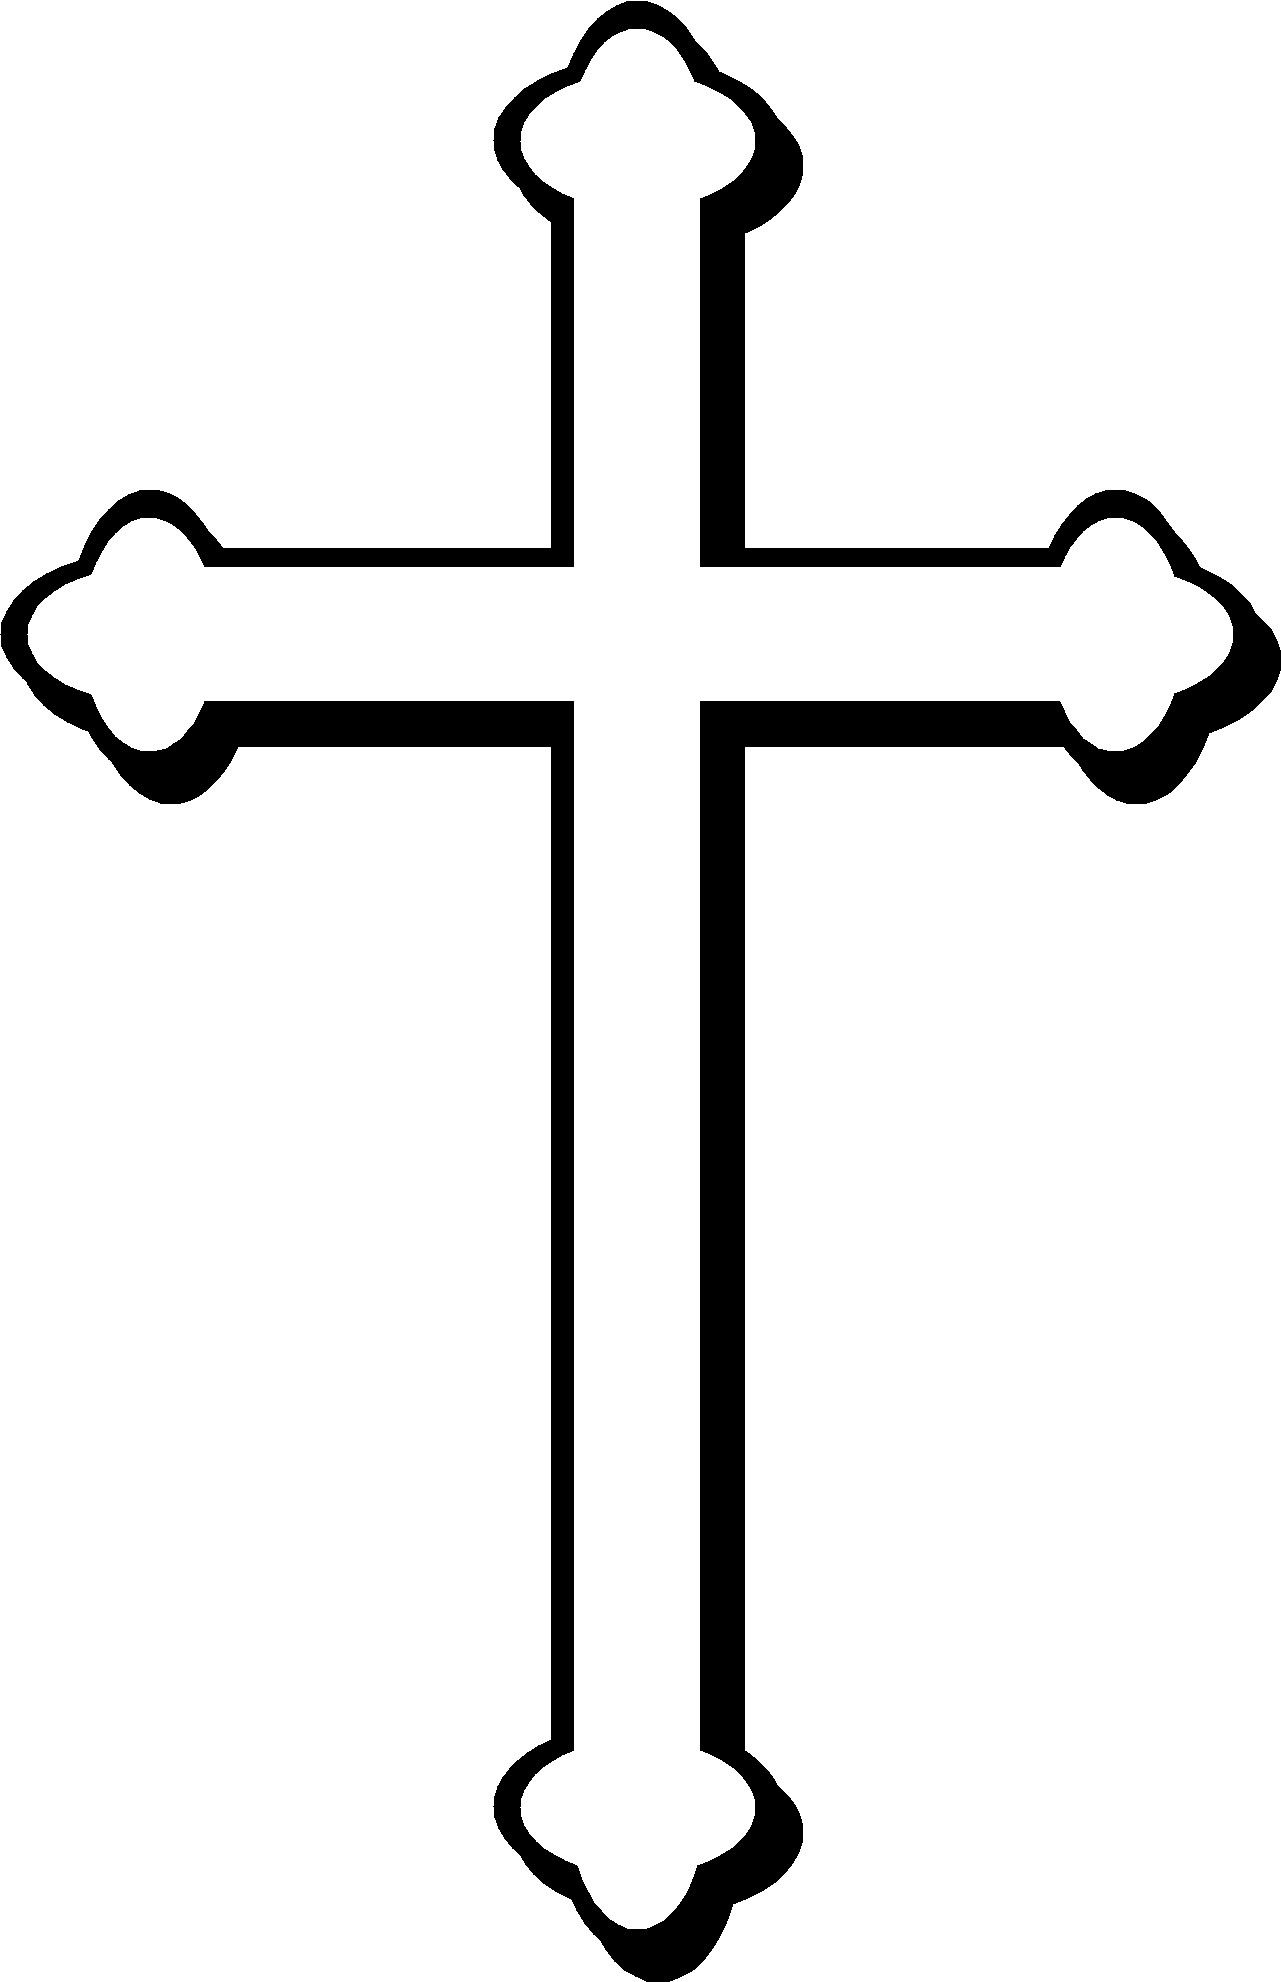 Free religious symbols clipart image royalty free stock 86+ Christian Cross Clipart | ClipartLook image royalty free stock